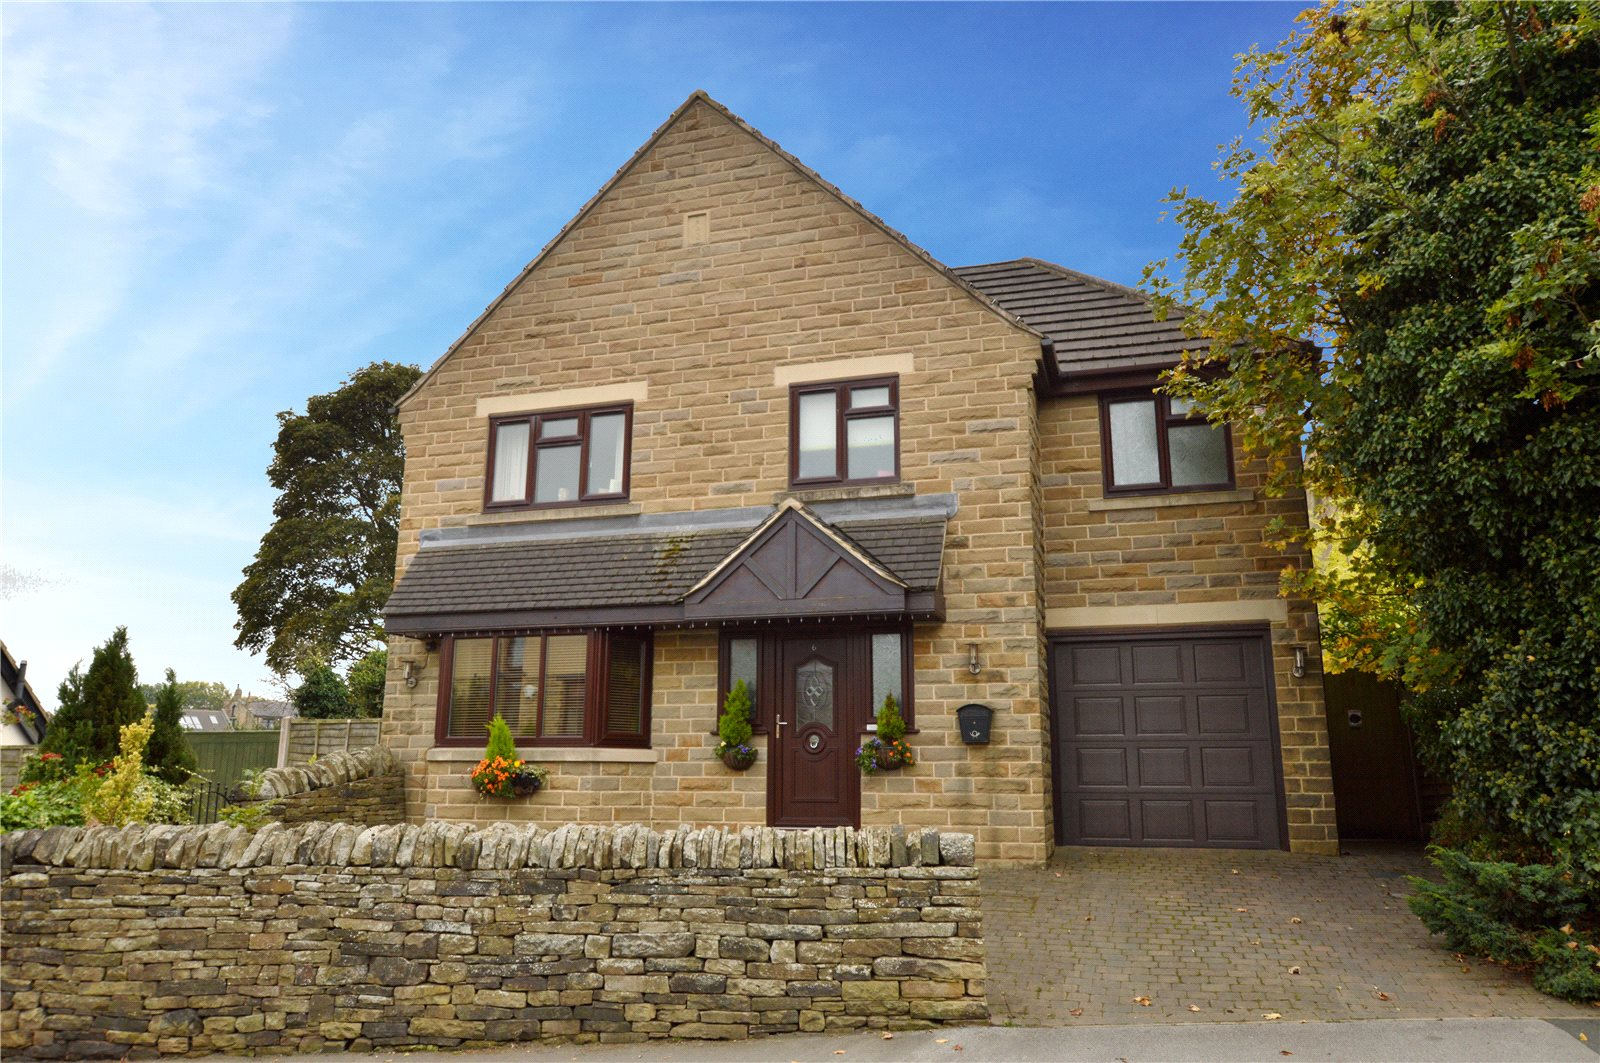 property for sale in Pudsey, exterior of home sandstone